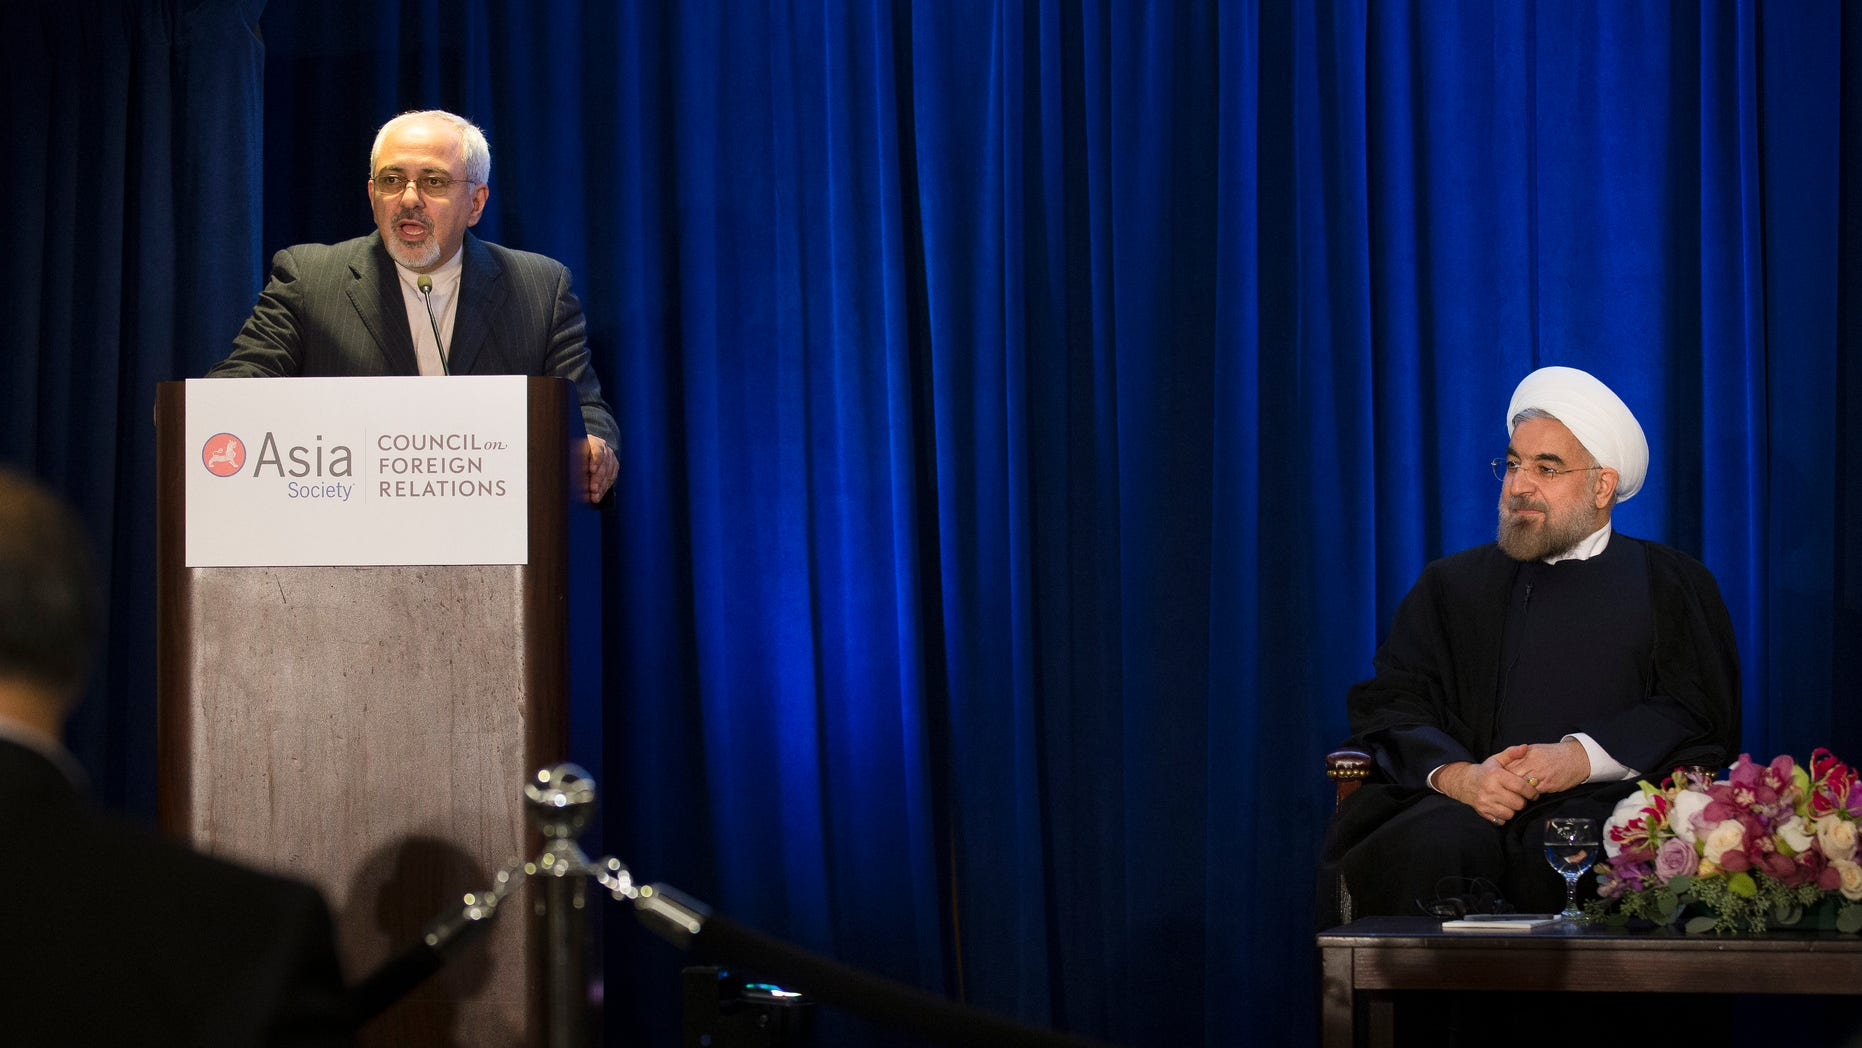 FILE - In this Thursday, Sept. 26, 2013, file photo,  Iranian President Hassan Rouhani, right, listens as Iranian Foreign Minister Mohammad Javad Zarif, left, updates the audience on the results of his bilateral meeting with U.S. Secretary of State John Kerry, during a address and discussion hosted by the Asia Society and the Council on Foreign Relations at the Hilton Hotel in New York. Iran has suddenly gone public with a significant concession just days ahead of a new round of talks with six world powers that begin Wednesday, Nov. 20, 2013 in Geneva. It still insists that it has a right to enrich uranium, but it now says that the six no longer need to publicly acknowledge its claim, opening a way to sidestep the dispute and focus on more practical steps both sides can agree on. (AP Photo/John Minchillo, File)